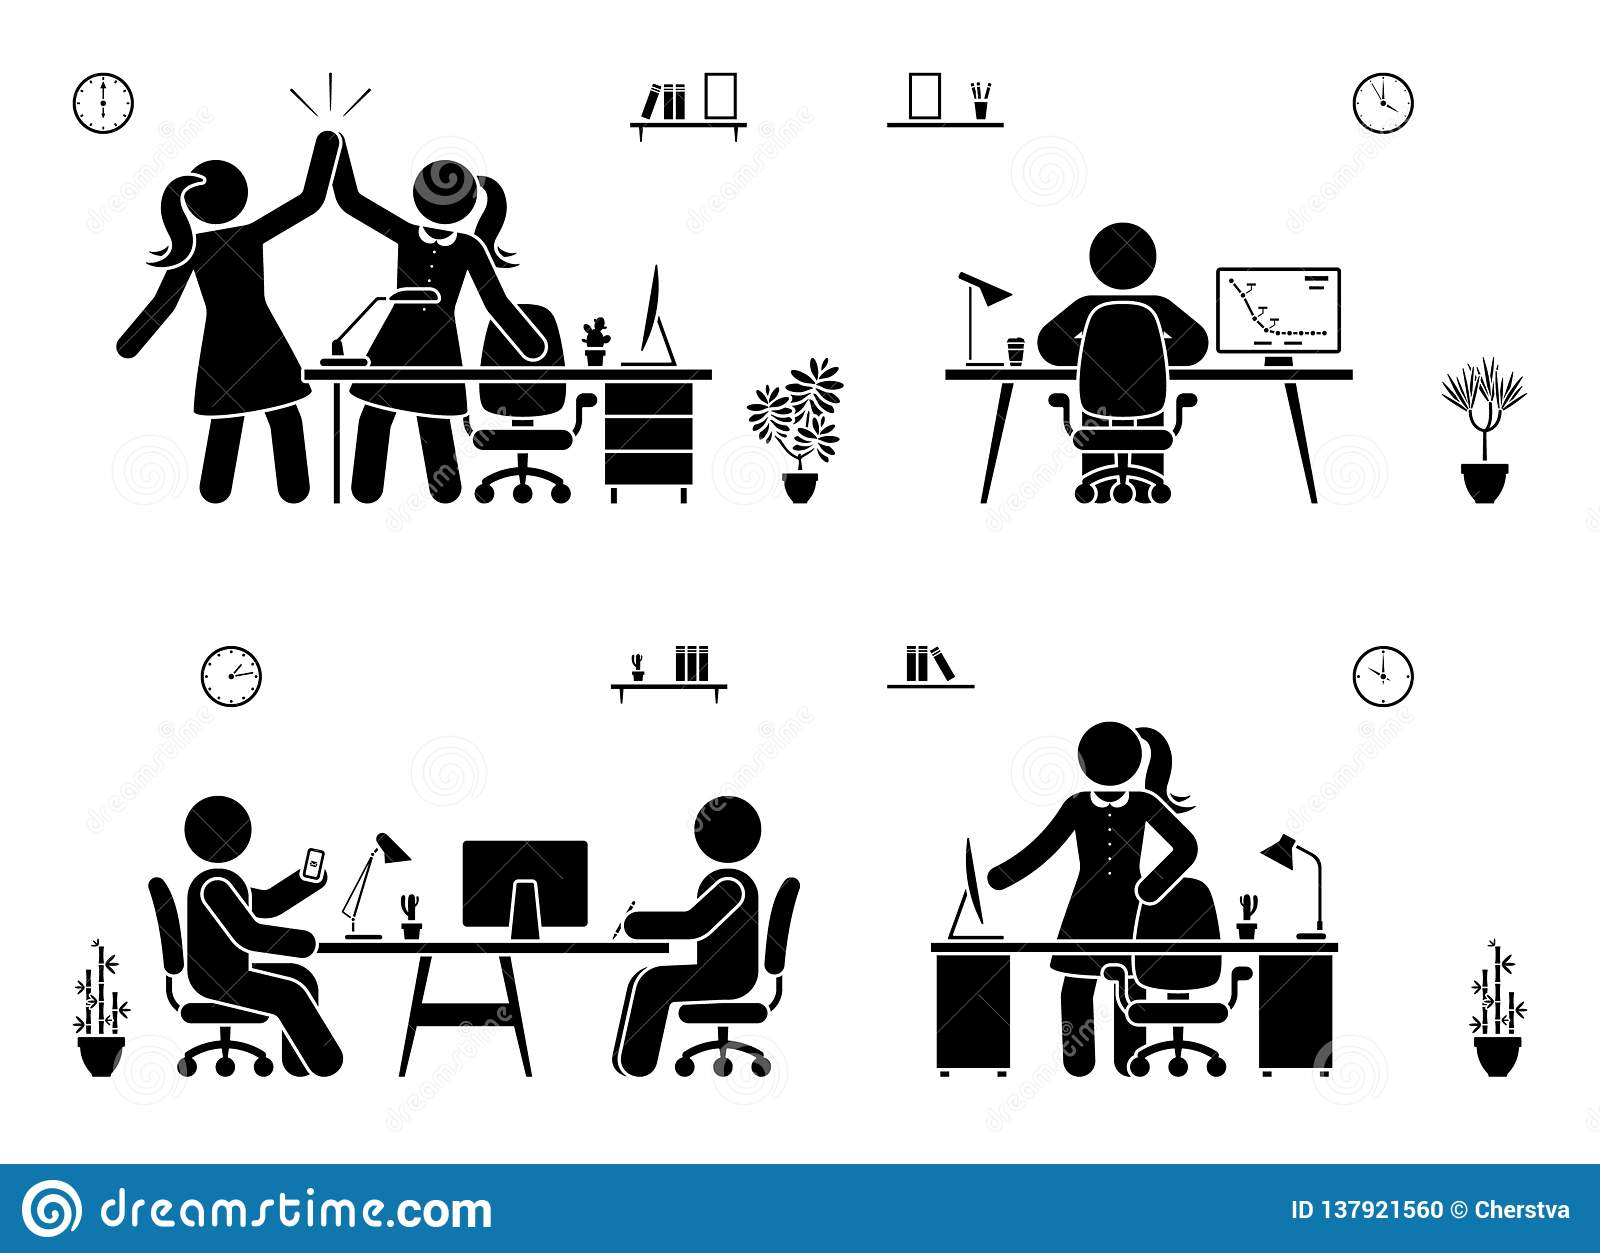 Stick figure business office vector icon silhouette on white. Men and women happy, working, sitting, reporting, writing people pic